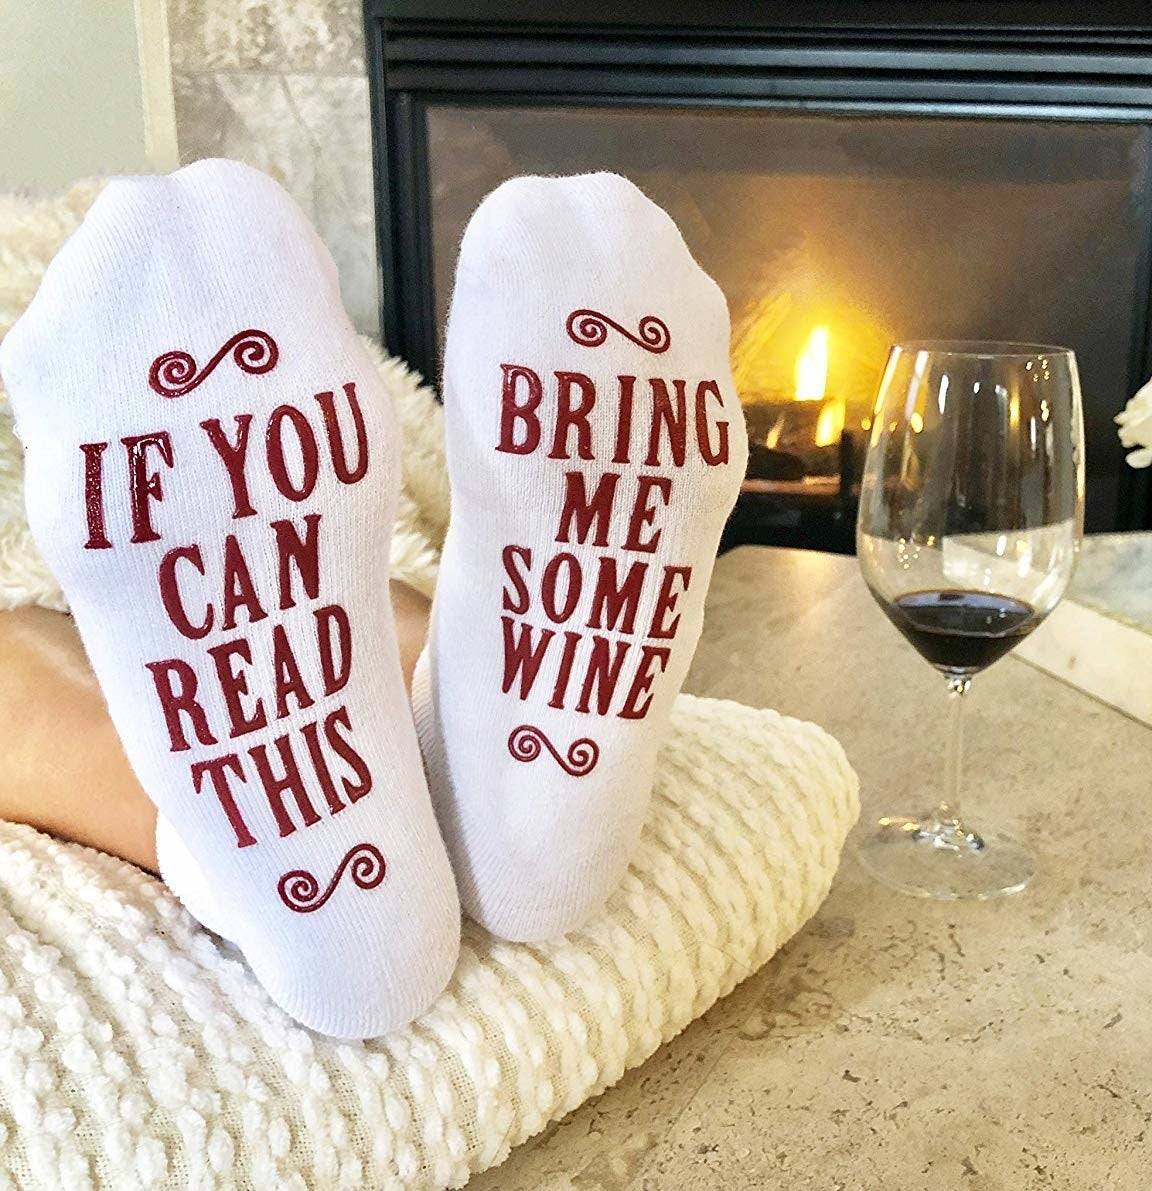 """Person with feet up wearing socks that say on the sole """"If you can read this bring me some wine"""""""